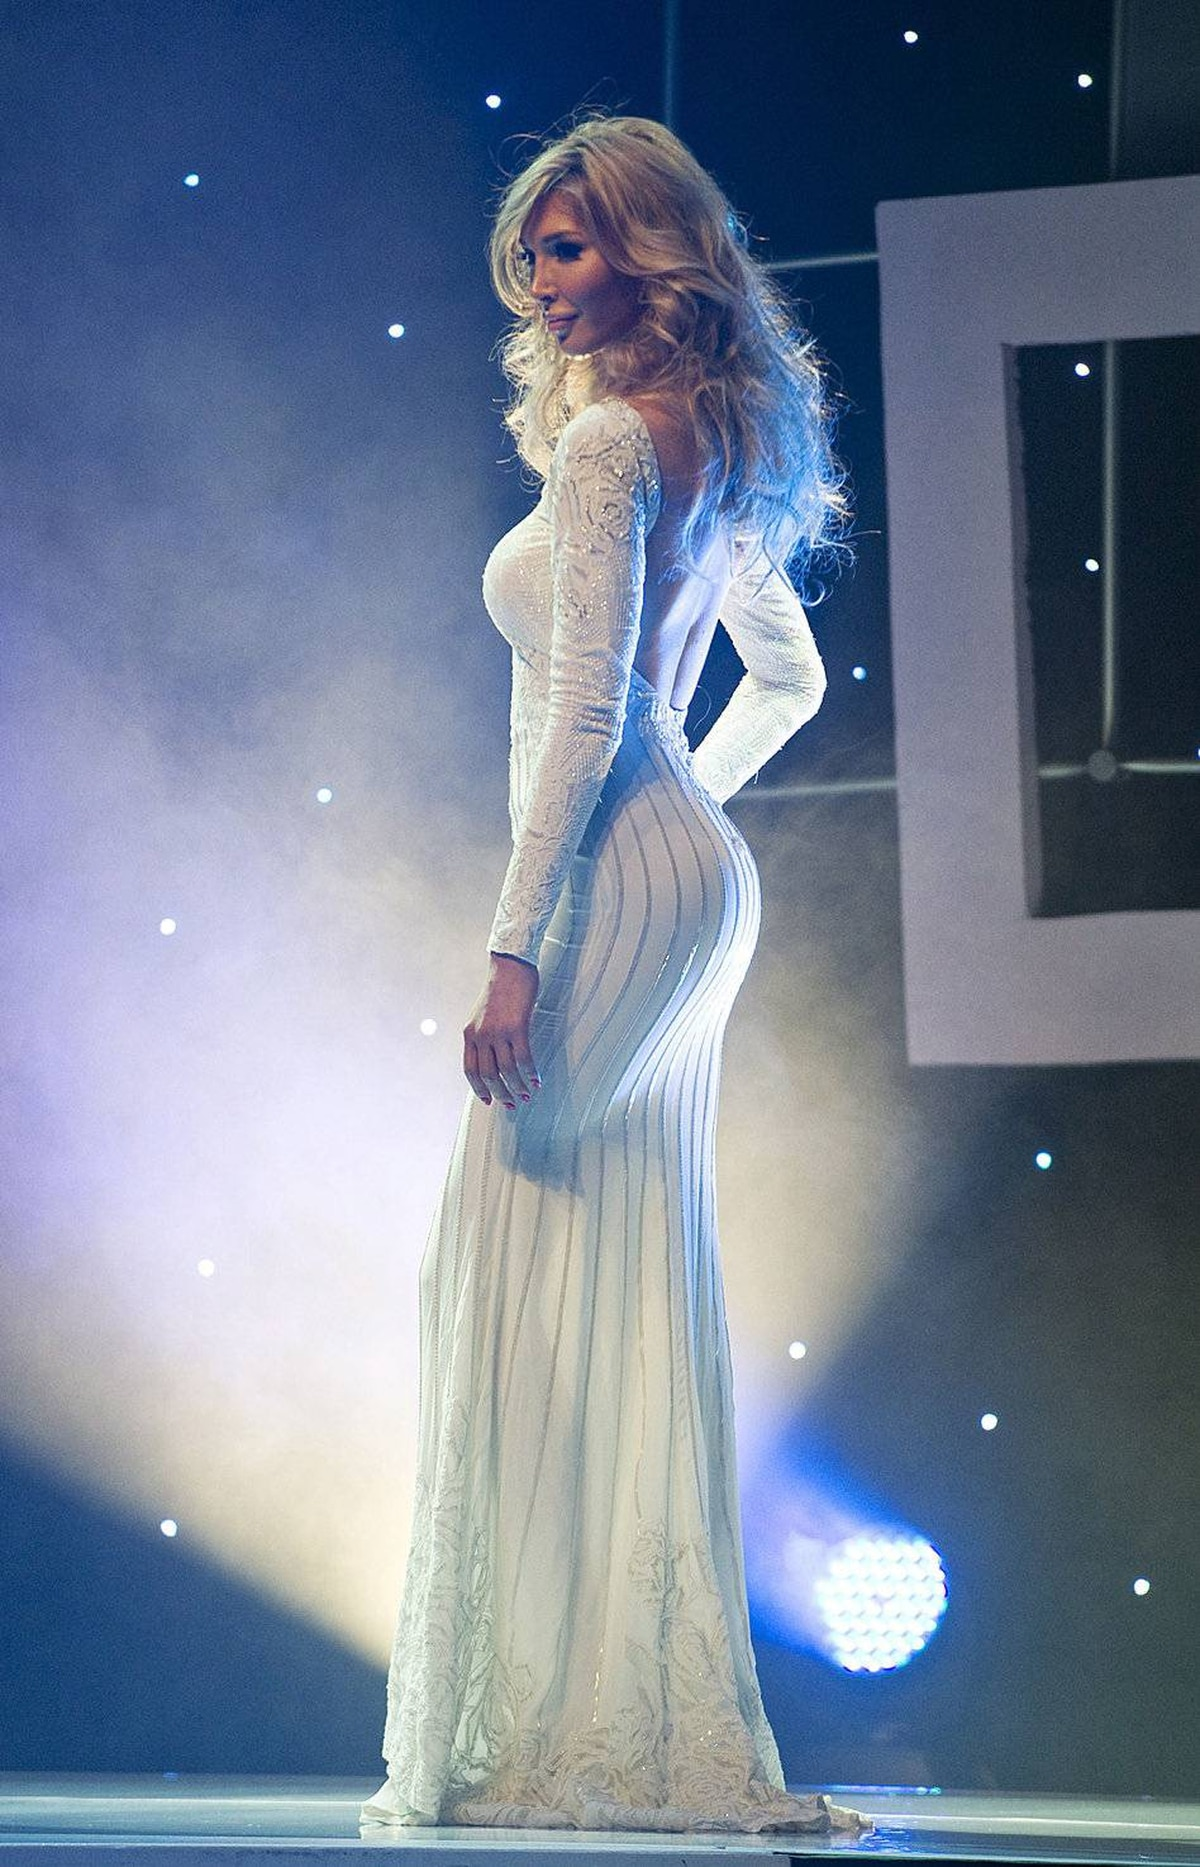 Jenna Talackova strikes a pose on stage at the Miss Universe Canada contest in Toronto on May 17, 2012.